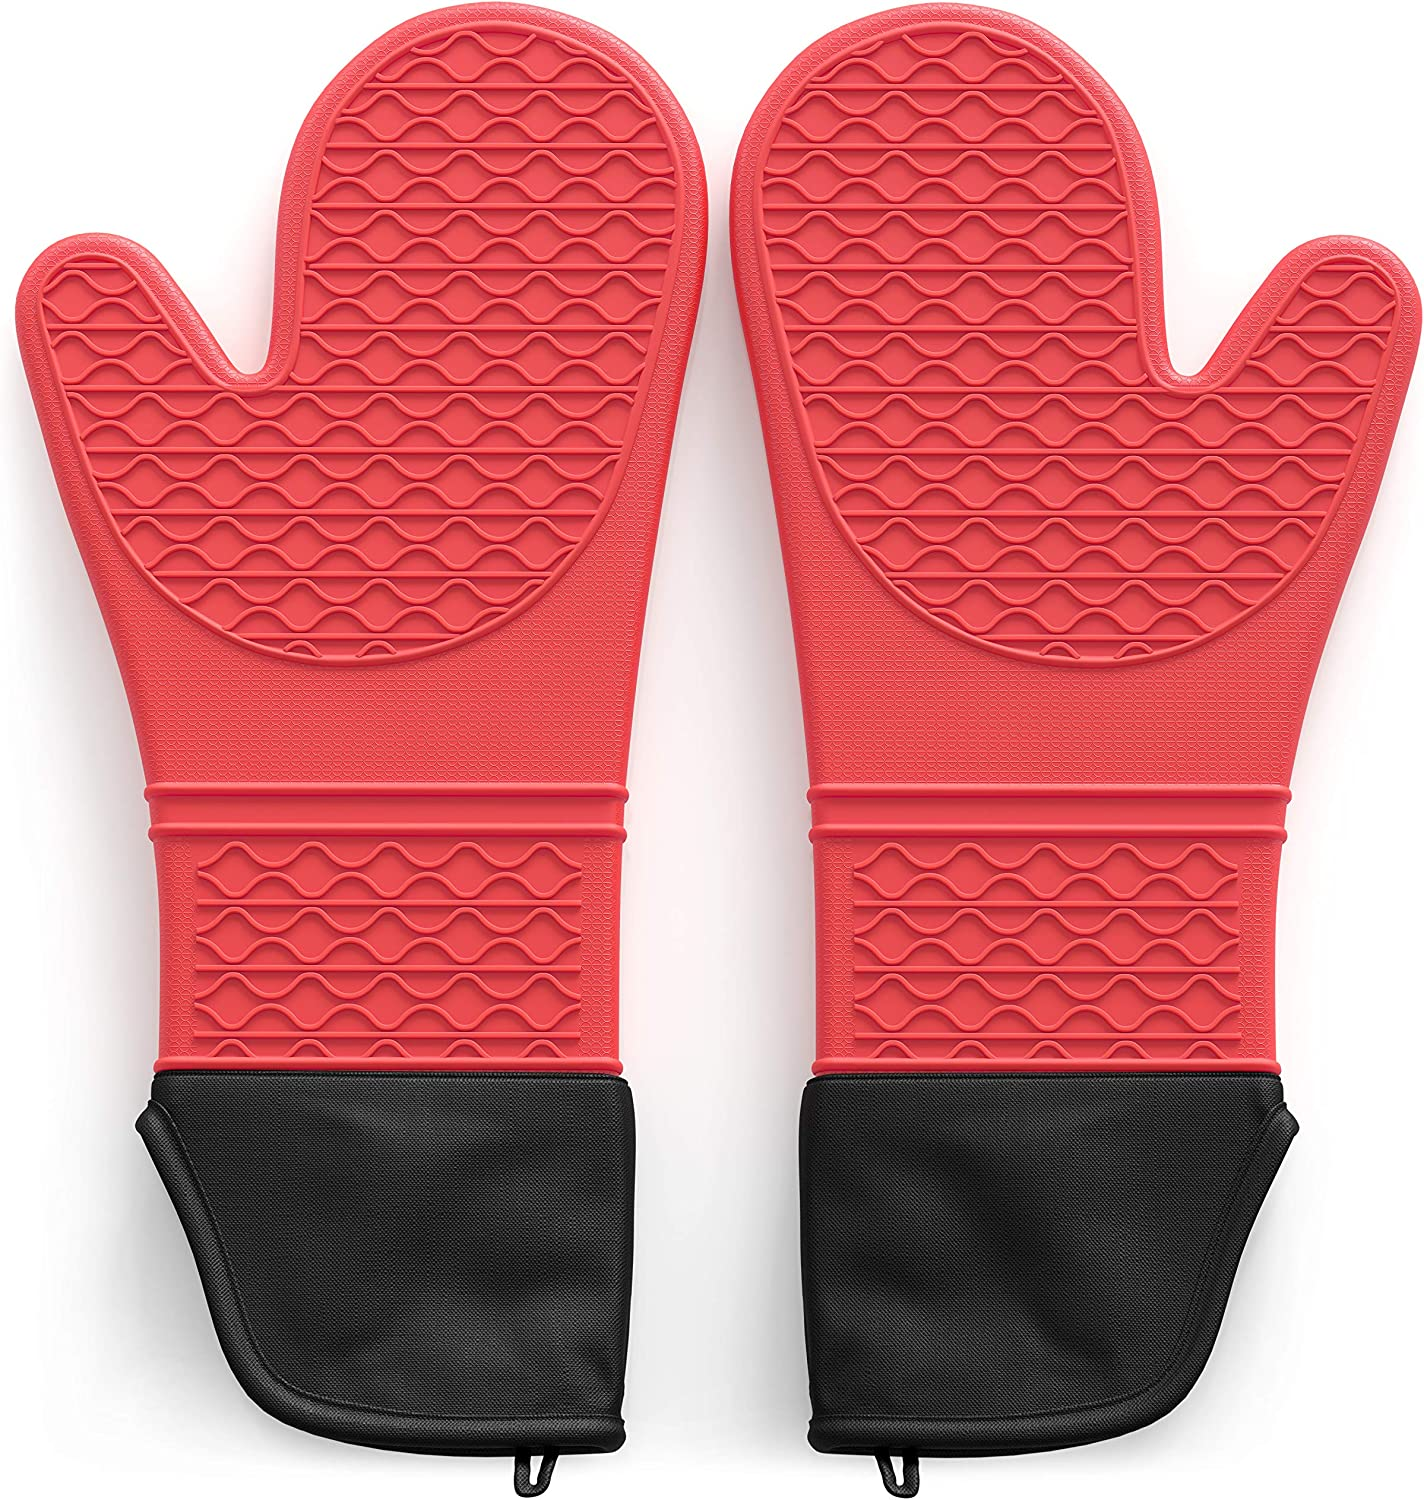 Tribal Cooking Extra Long Oven Mitts - Silicone Oven Mitt Set - Heat Resistant Mittens and Pot Holders - Silicone Kitchen Baking Gloves - Heat Resistance to 500 Degrees, Non Slip, Double Layered